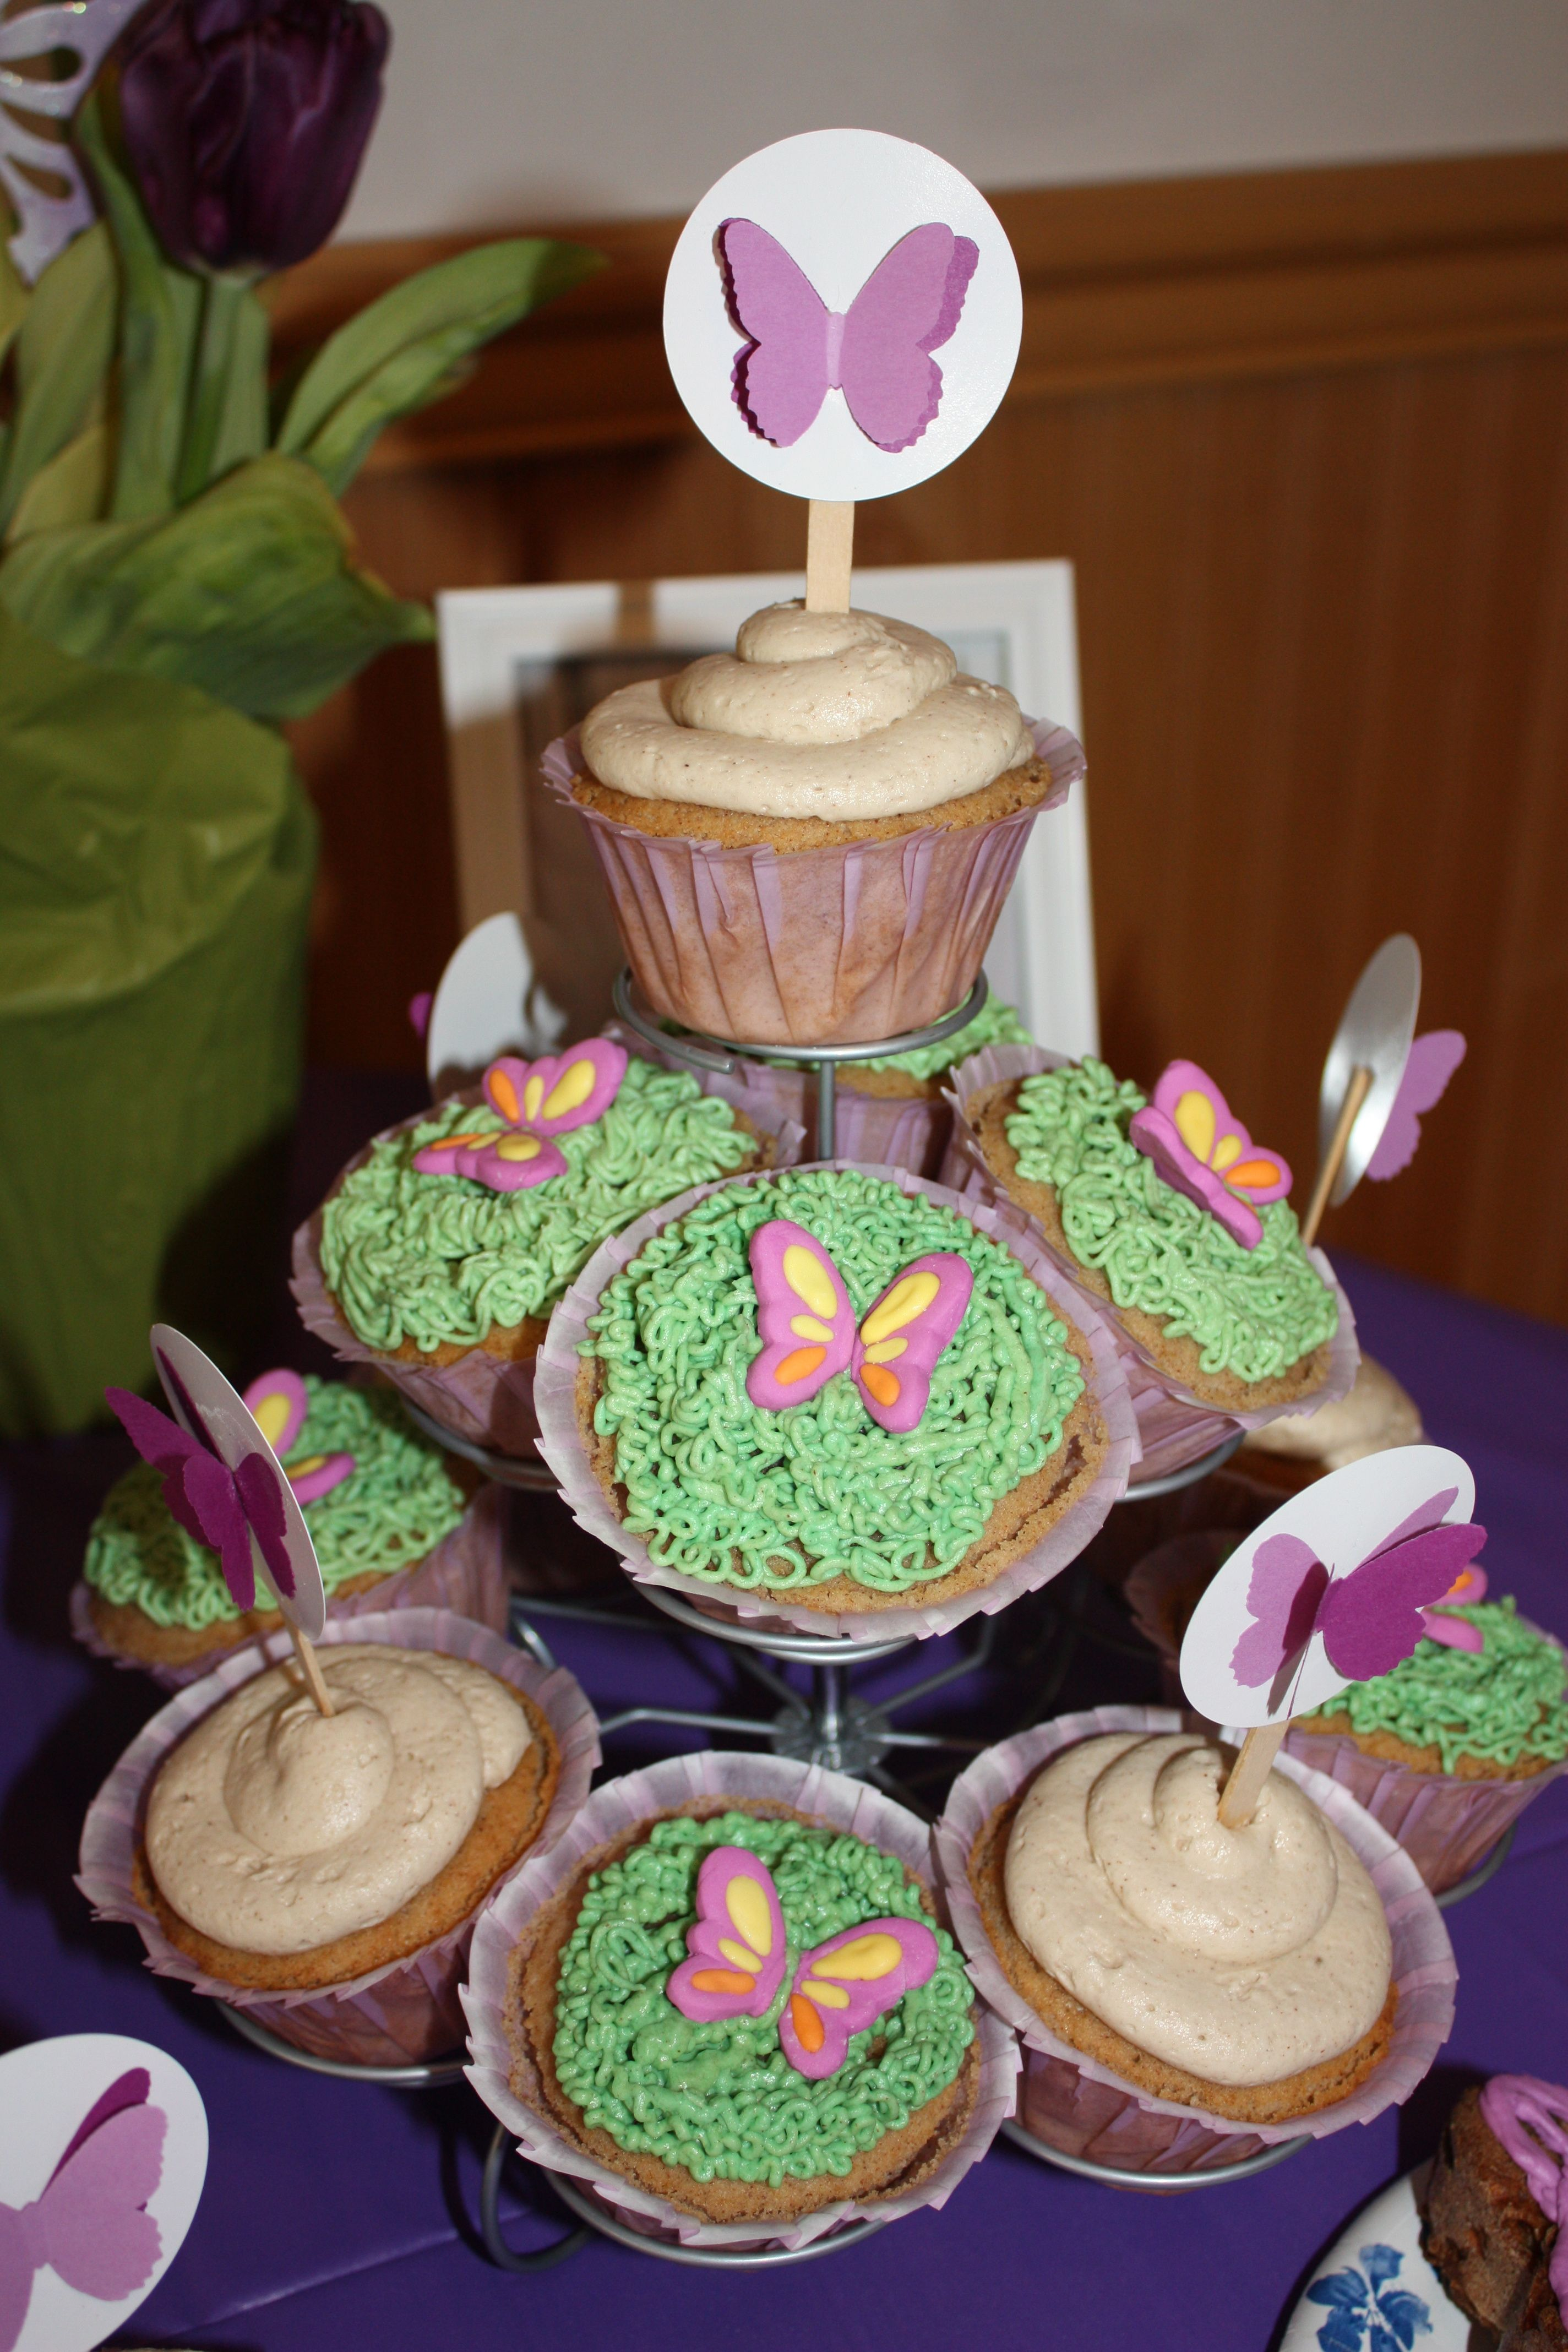 Butterfly cupcakes with a butterfly topper